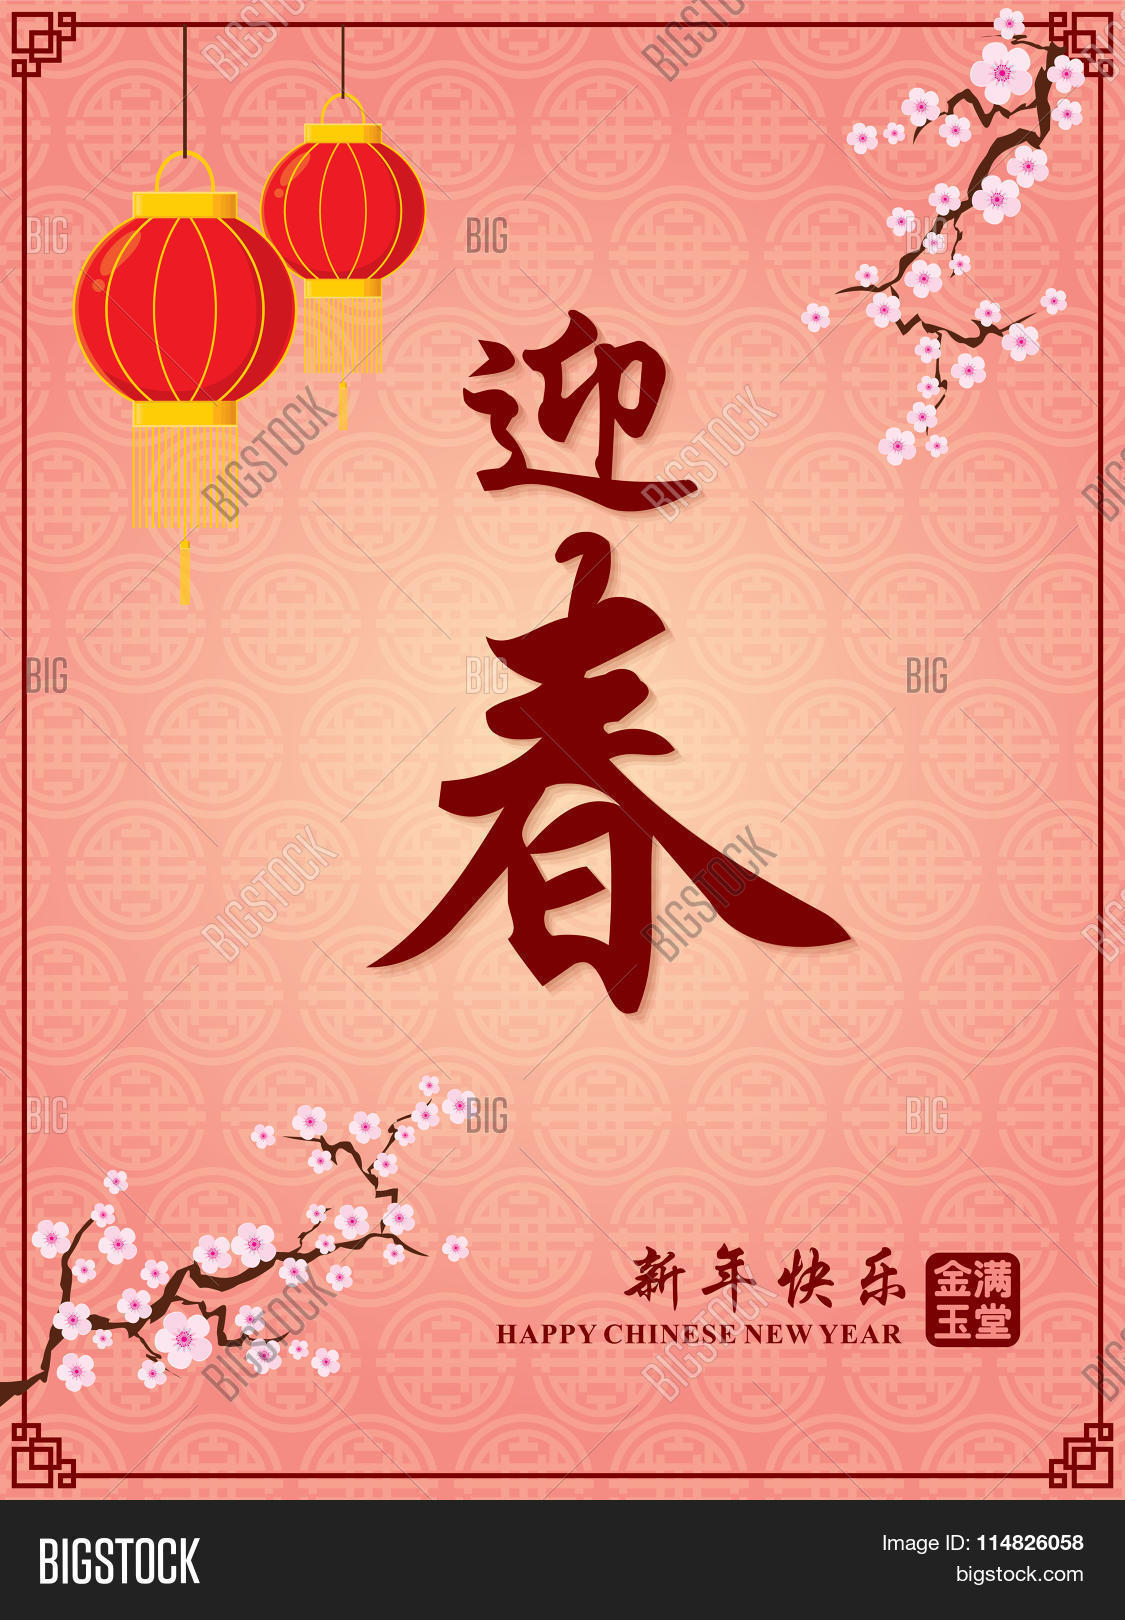 Vintage Chinese Calendar : Vintage chinese new vector photo free trial bigstock